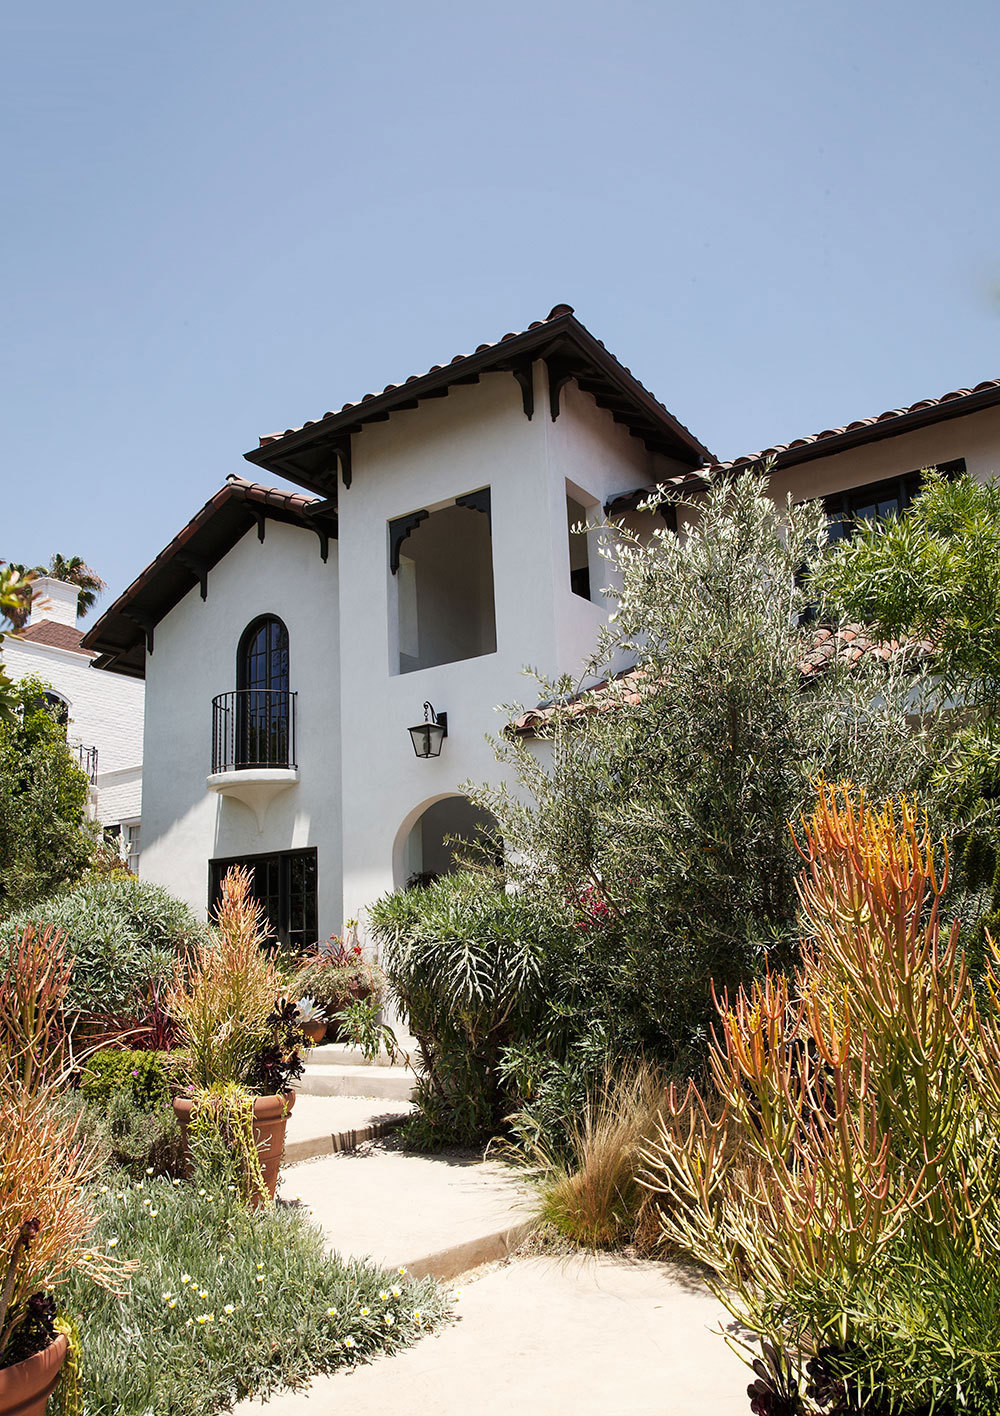 Architect Bobby Rees restored the 1920s house to its original Spanish-inspired style.